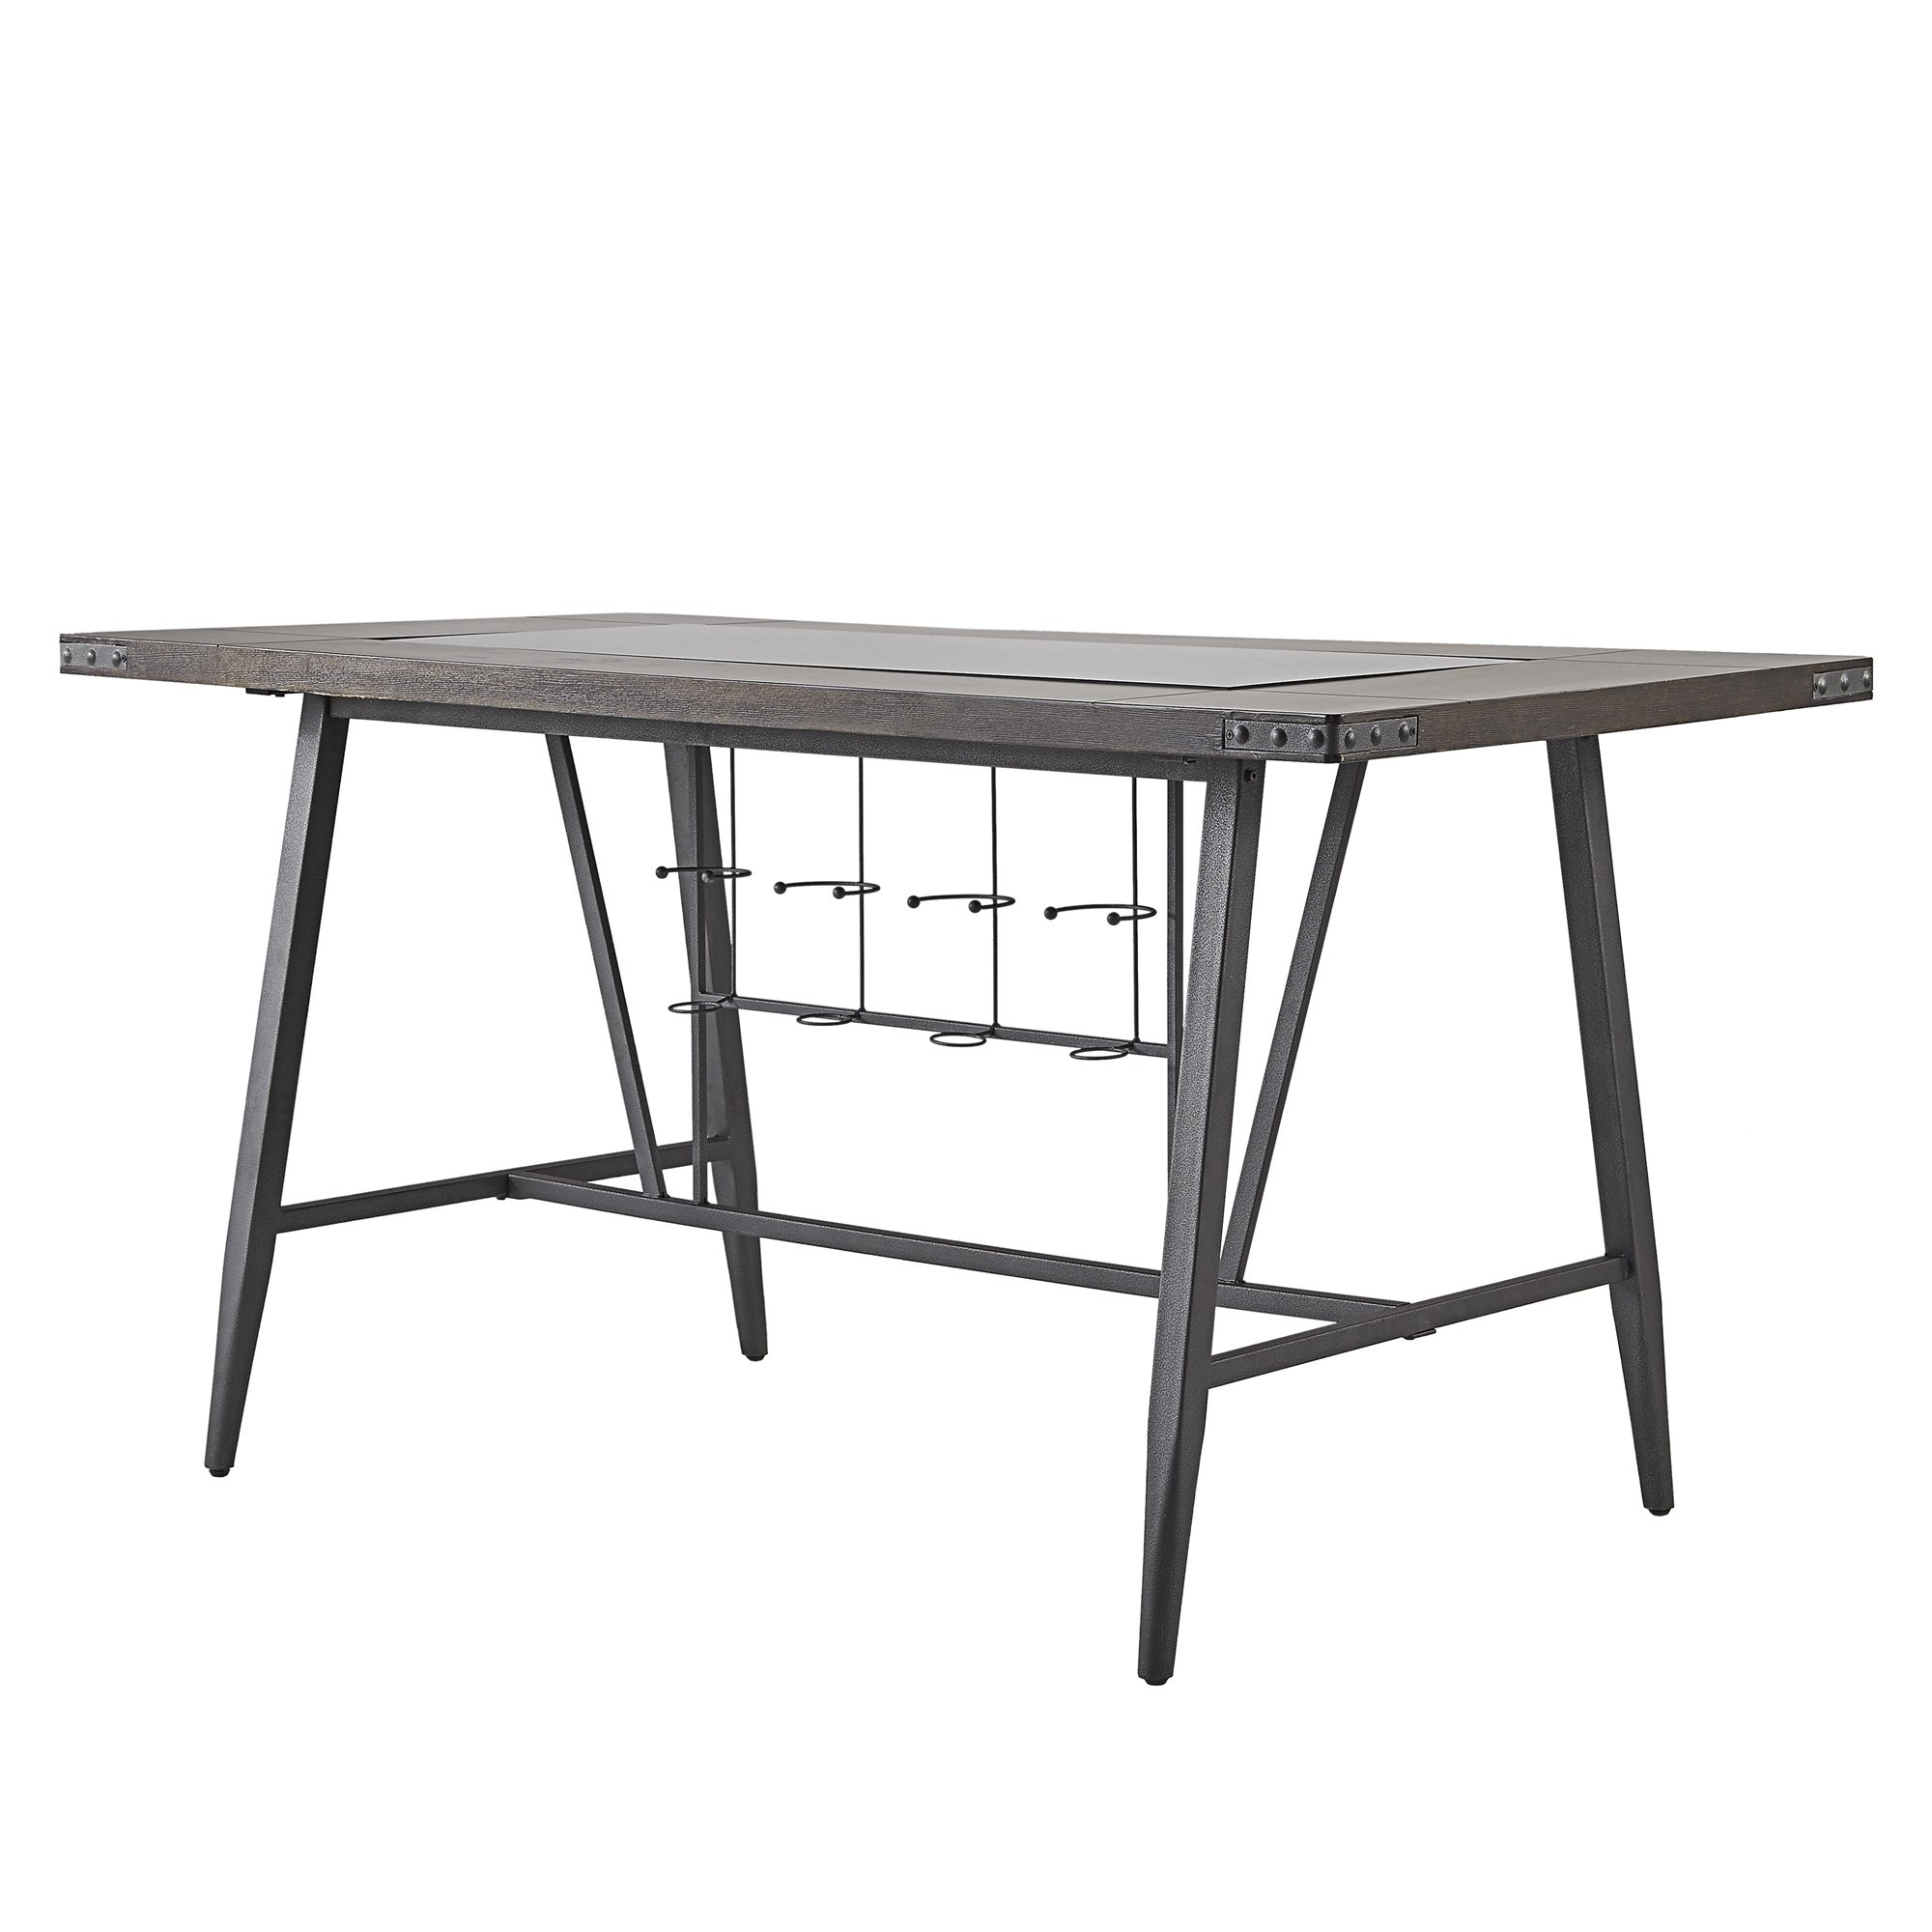 Shop Harley Counter Height Dining Table With Wine Rackinspire Q Pertaining To Current Ina Matte Black 60 Inch Counter Tables With Frosted Glass (View 13 of 20)